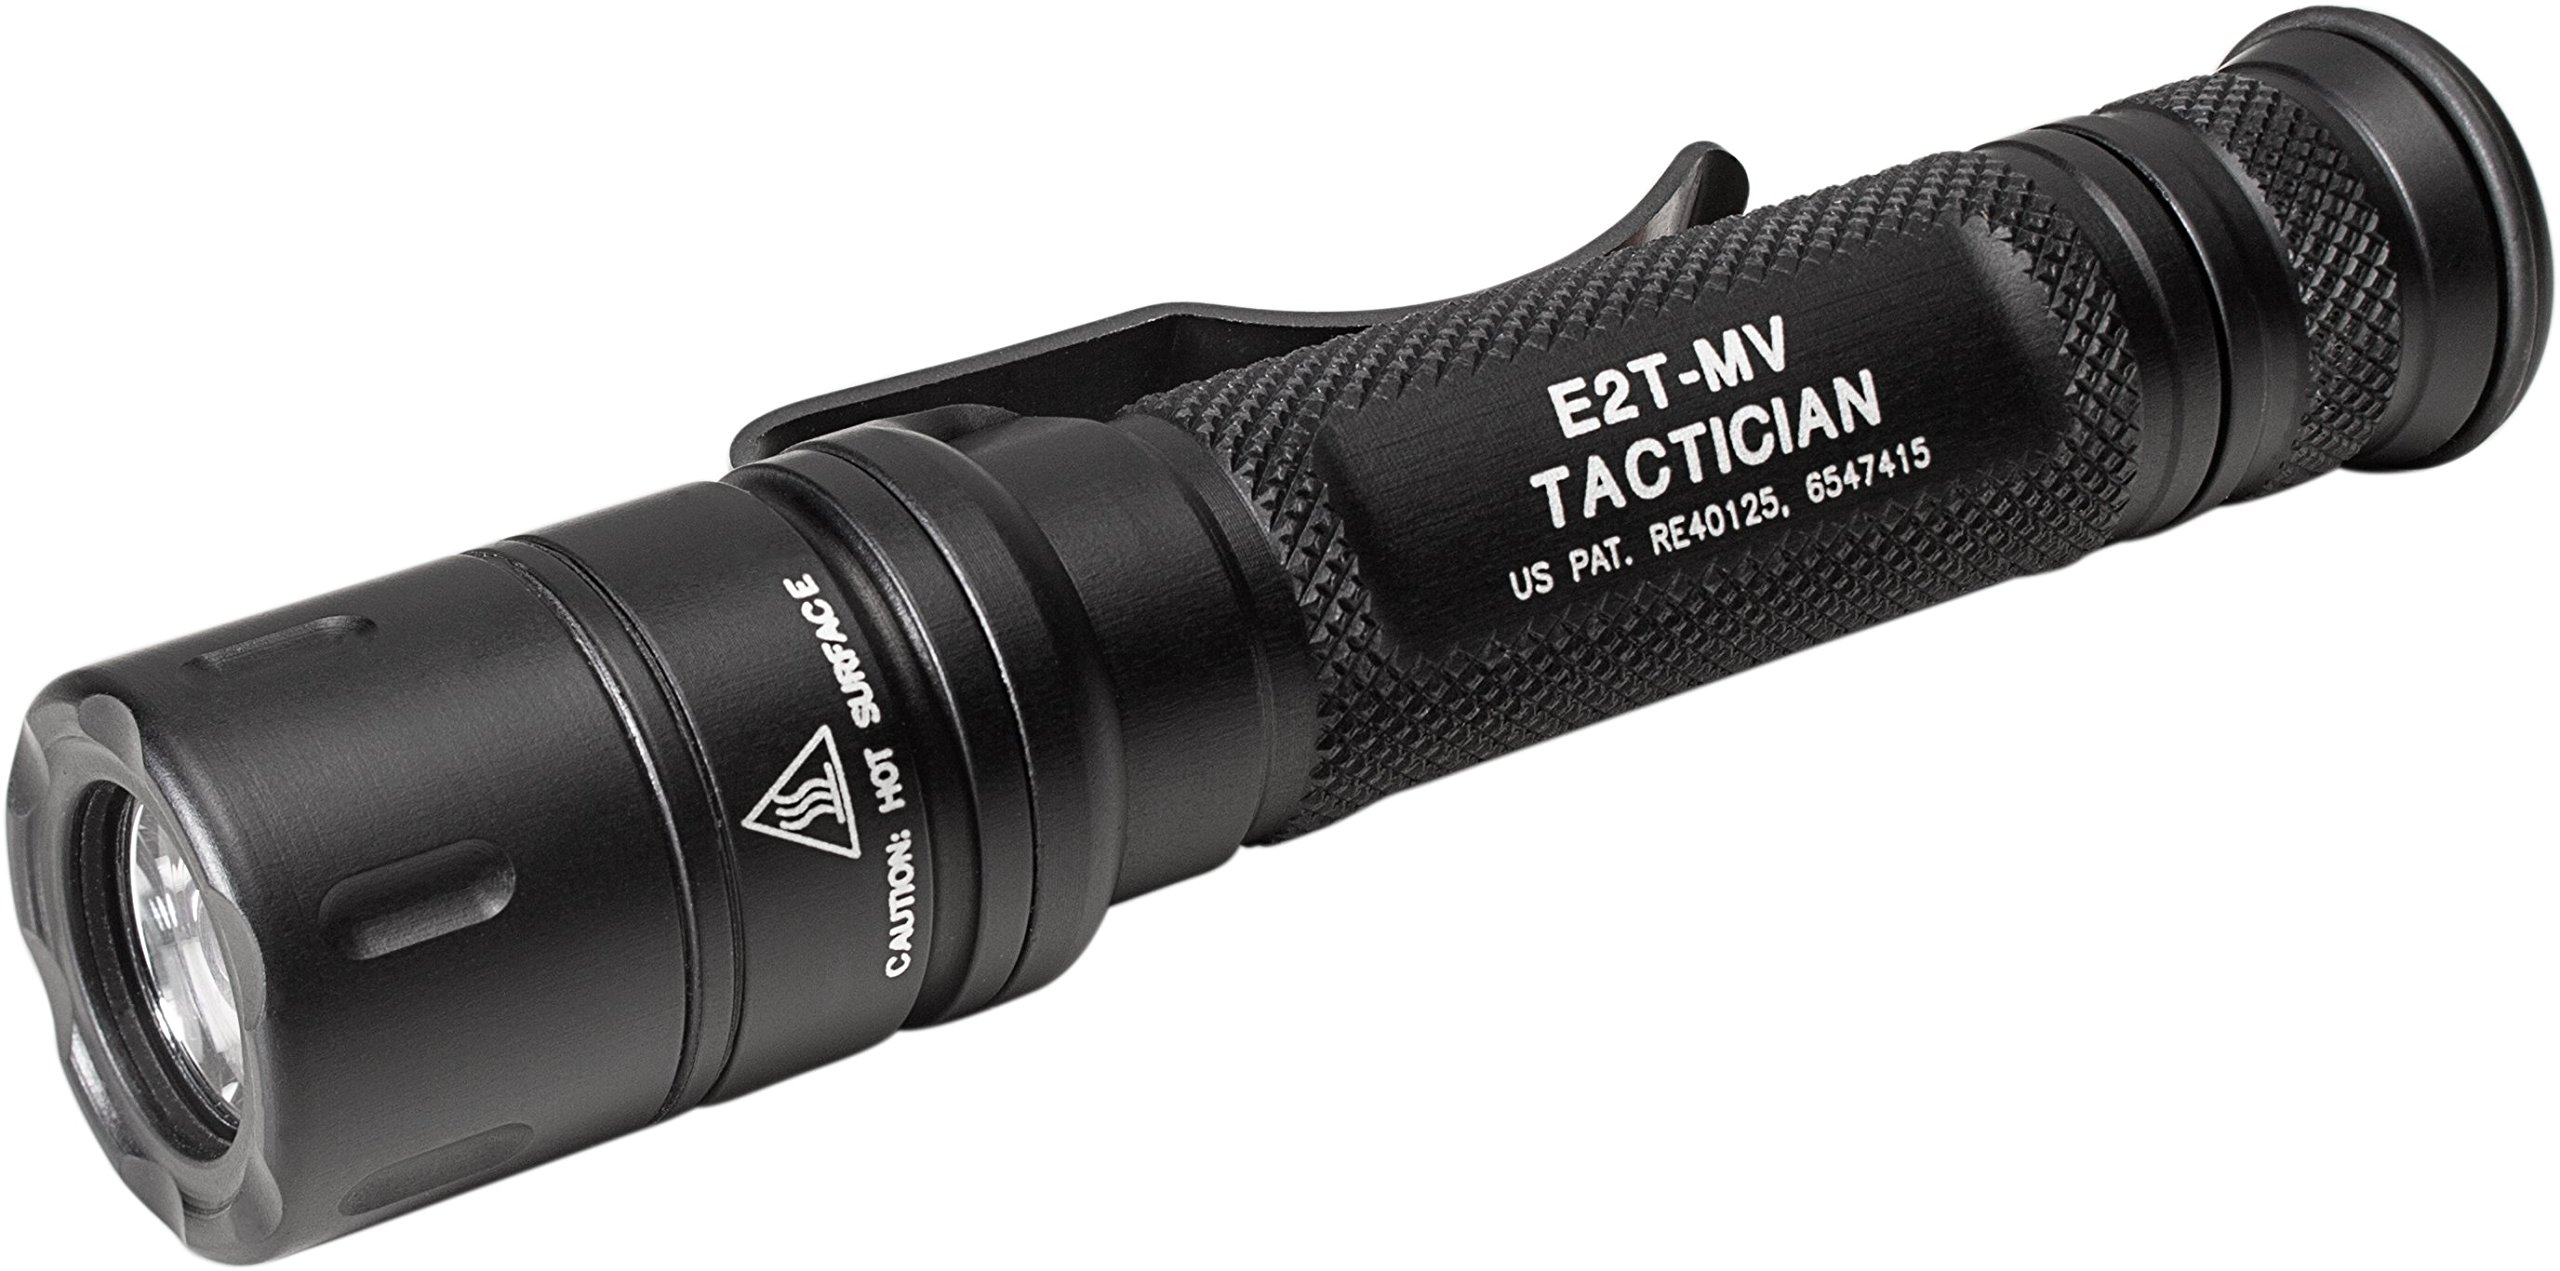 SureFire Handhelds/Tactician High-Output LED Flashlight with Maxvision, Black